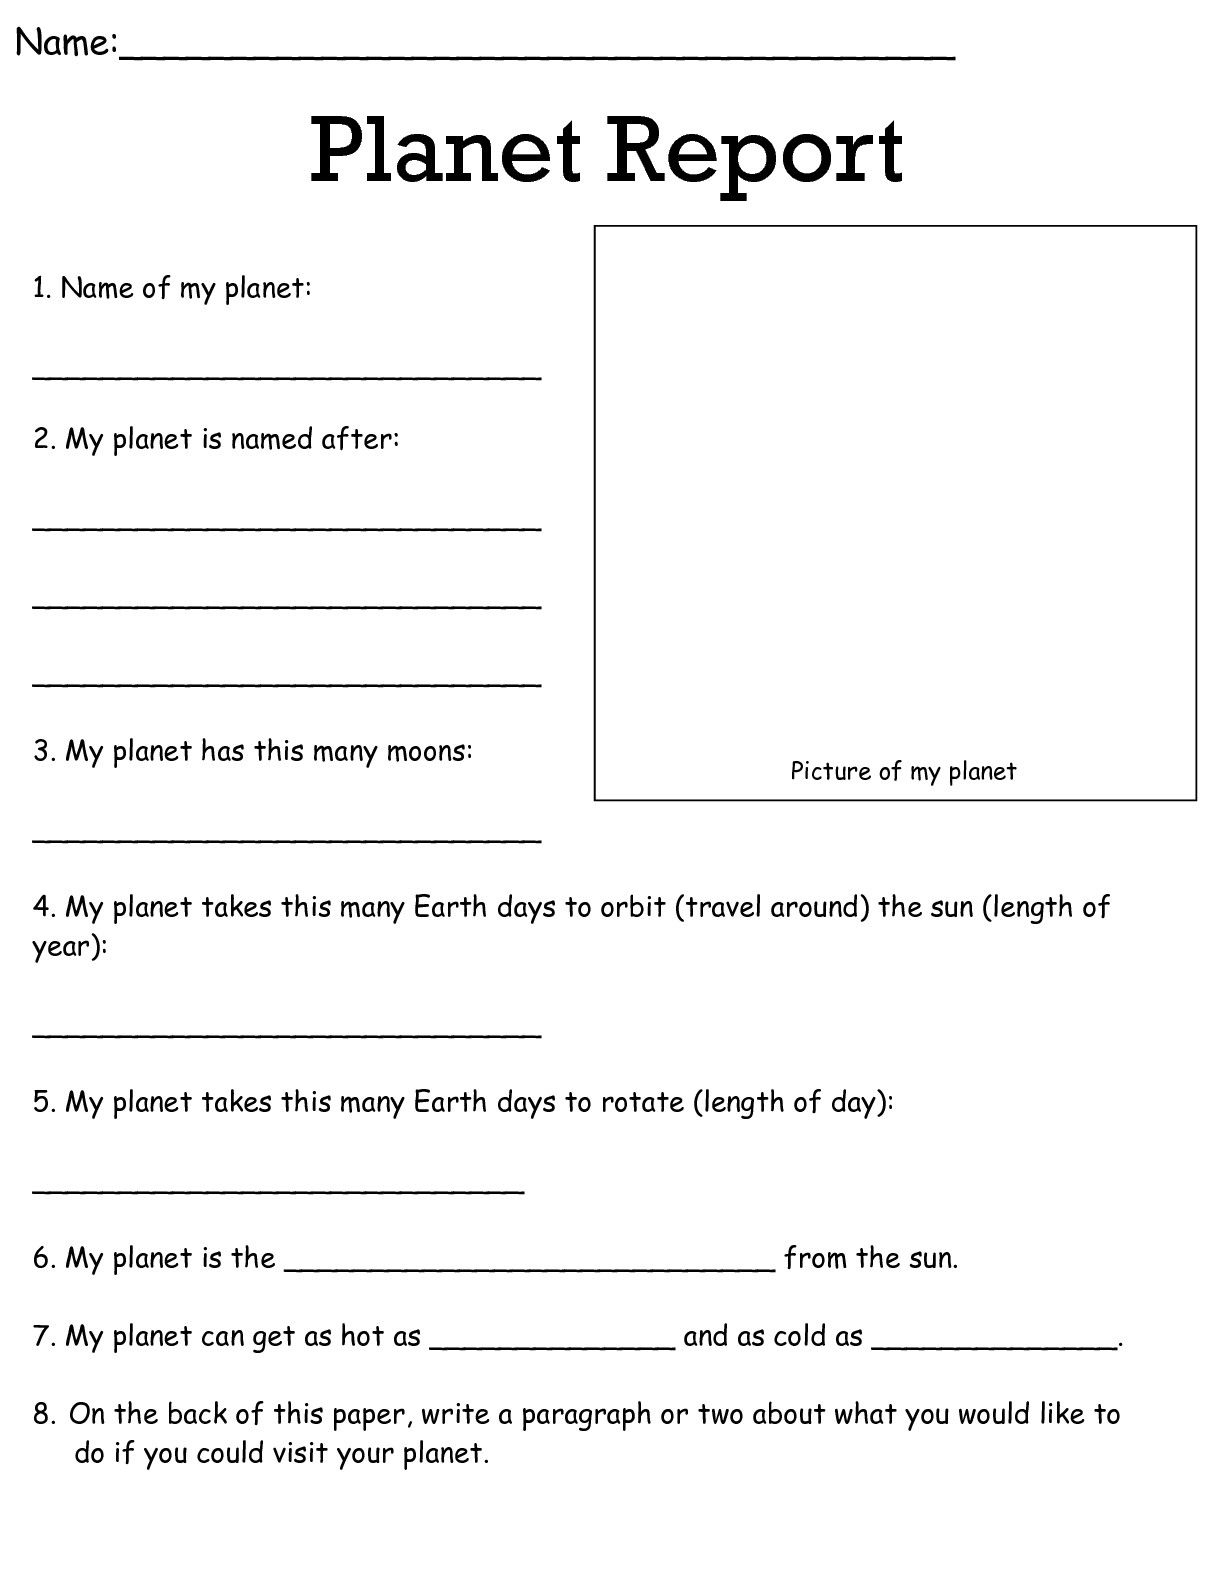 Job Worksheets 5Th &6Th | Science Worksheets Science Worksheets | 6Th Grade Writing Worksheets Printable Free